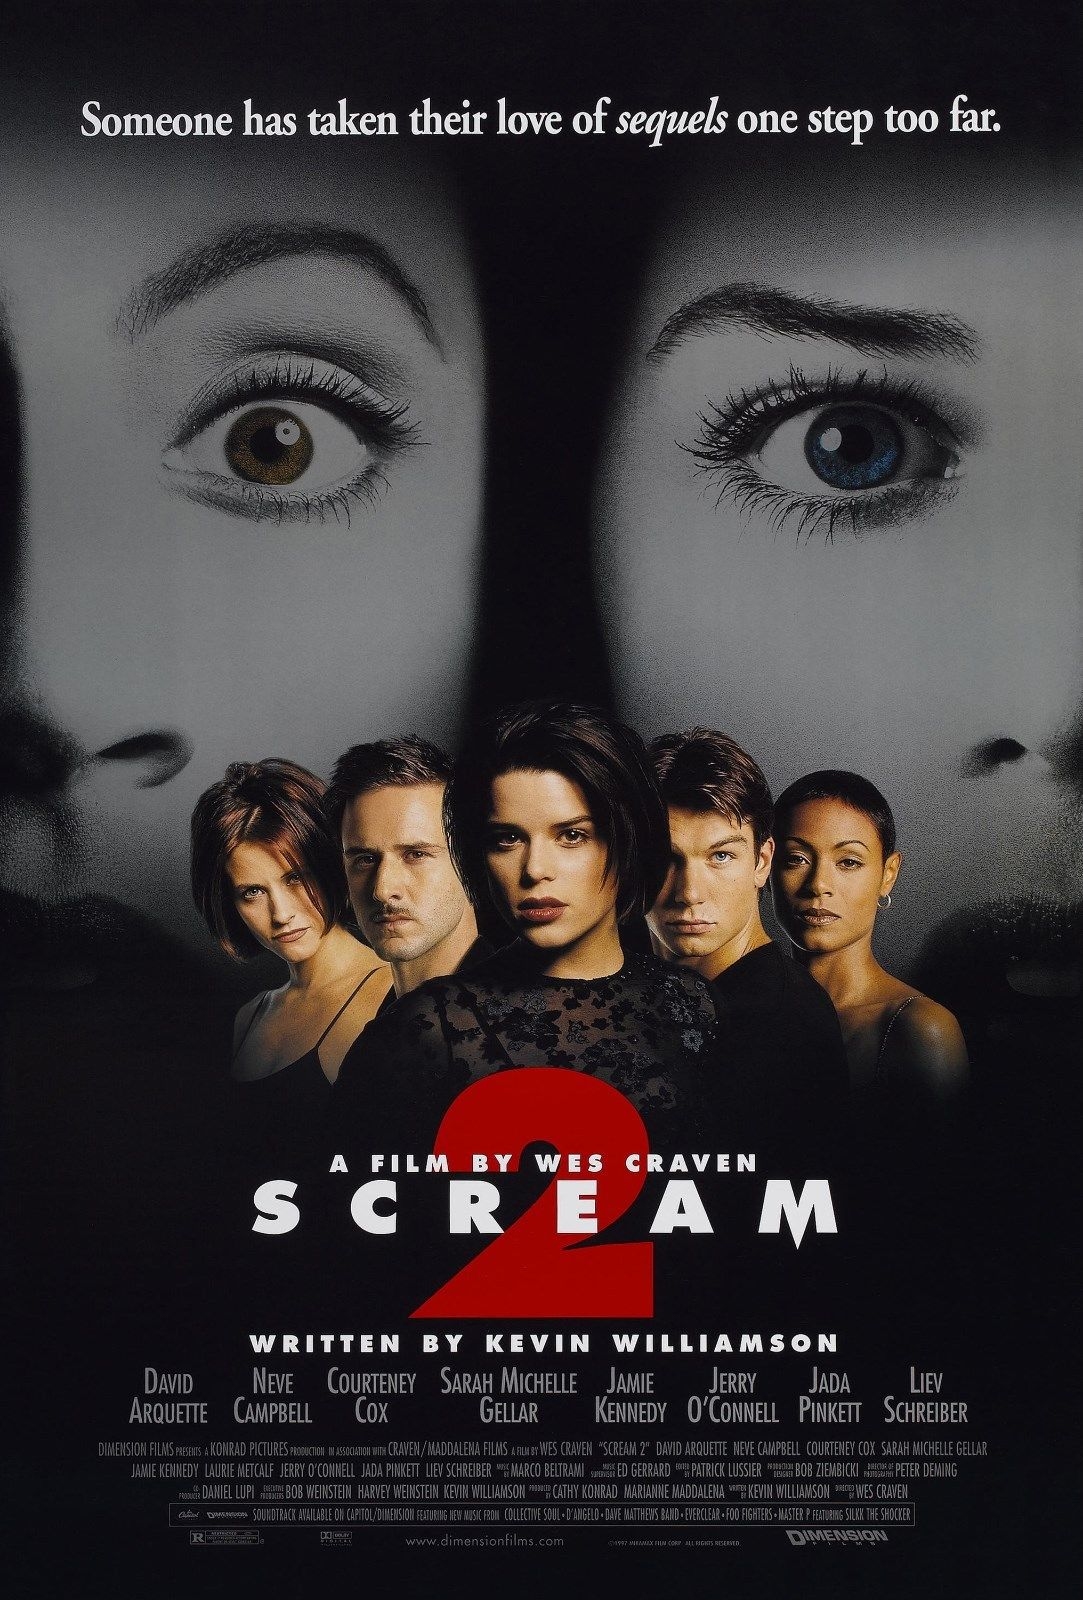 Scream 2 poster - Exclusive: Scream 2's Jerry O'Connell and Kevin Williamson Talk Leaked Scripts and Different Killers!